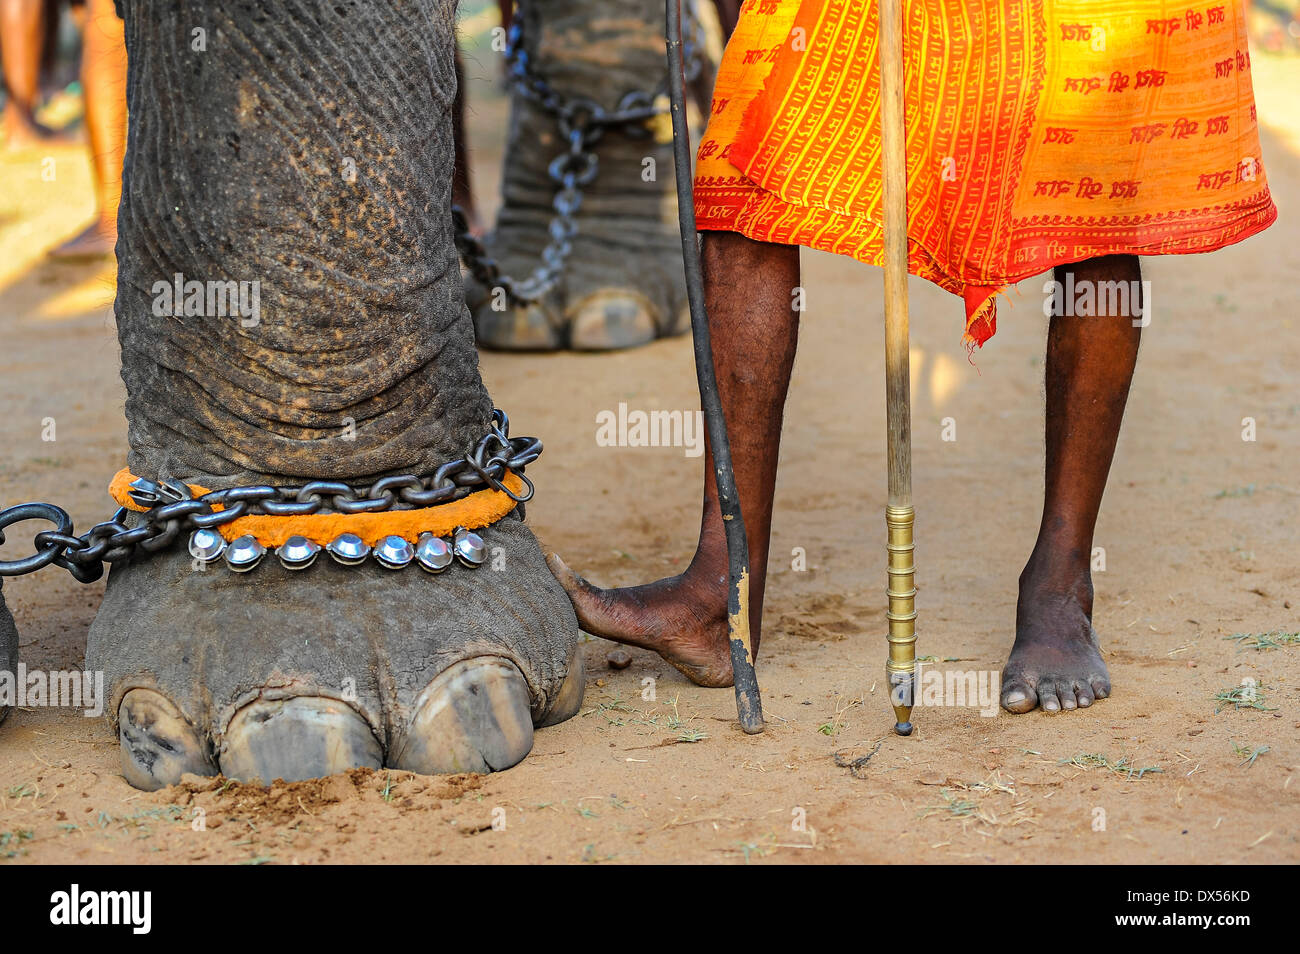 Elephant foot and human feet at Hindu temple festival, Thrissur, Kerala, South India, India - Stock Image